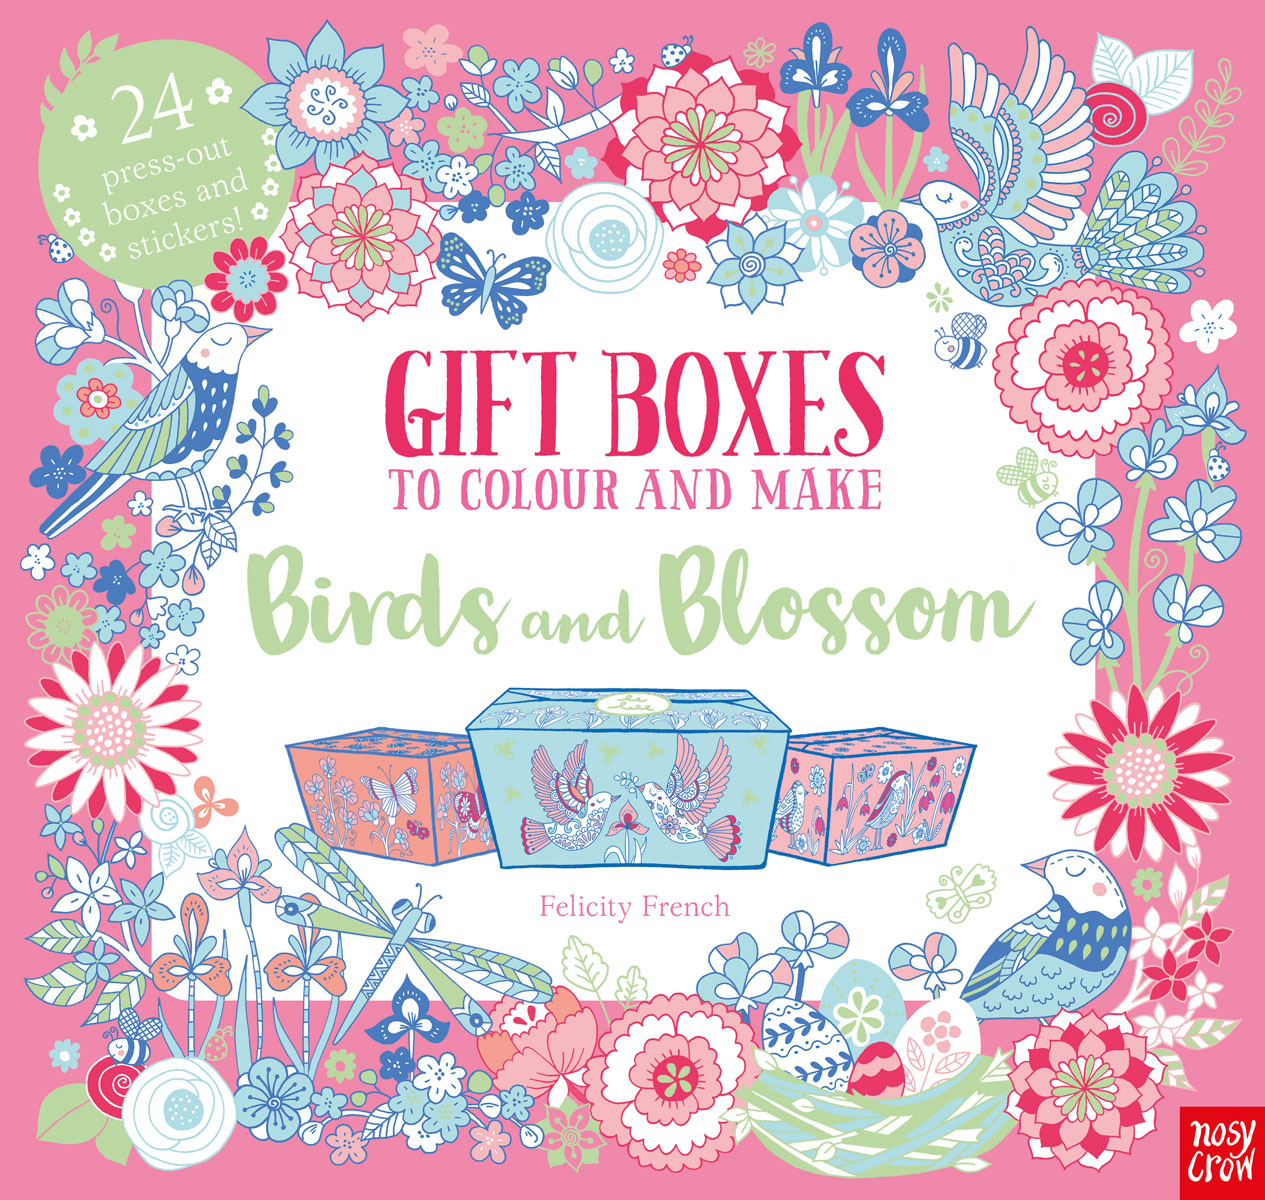 Gift Boxes to Colour and Make: Birds and Blossom kz headset storage box suitable for original headphones as gift to the customer